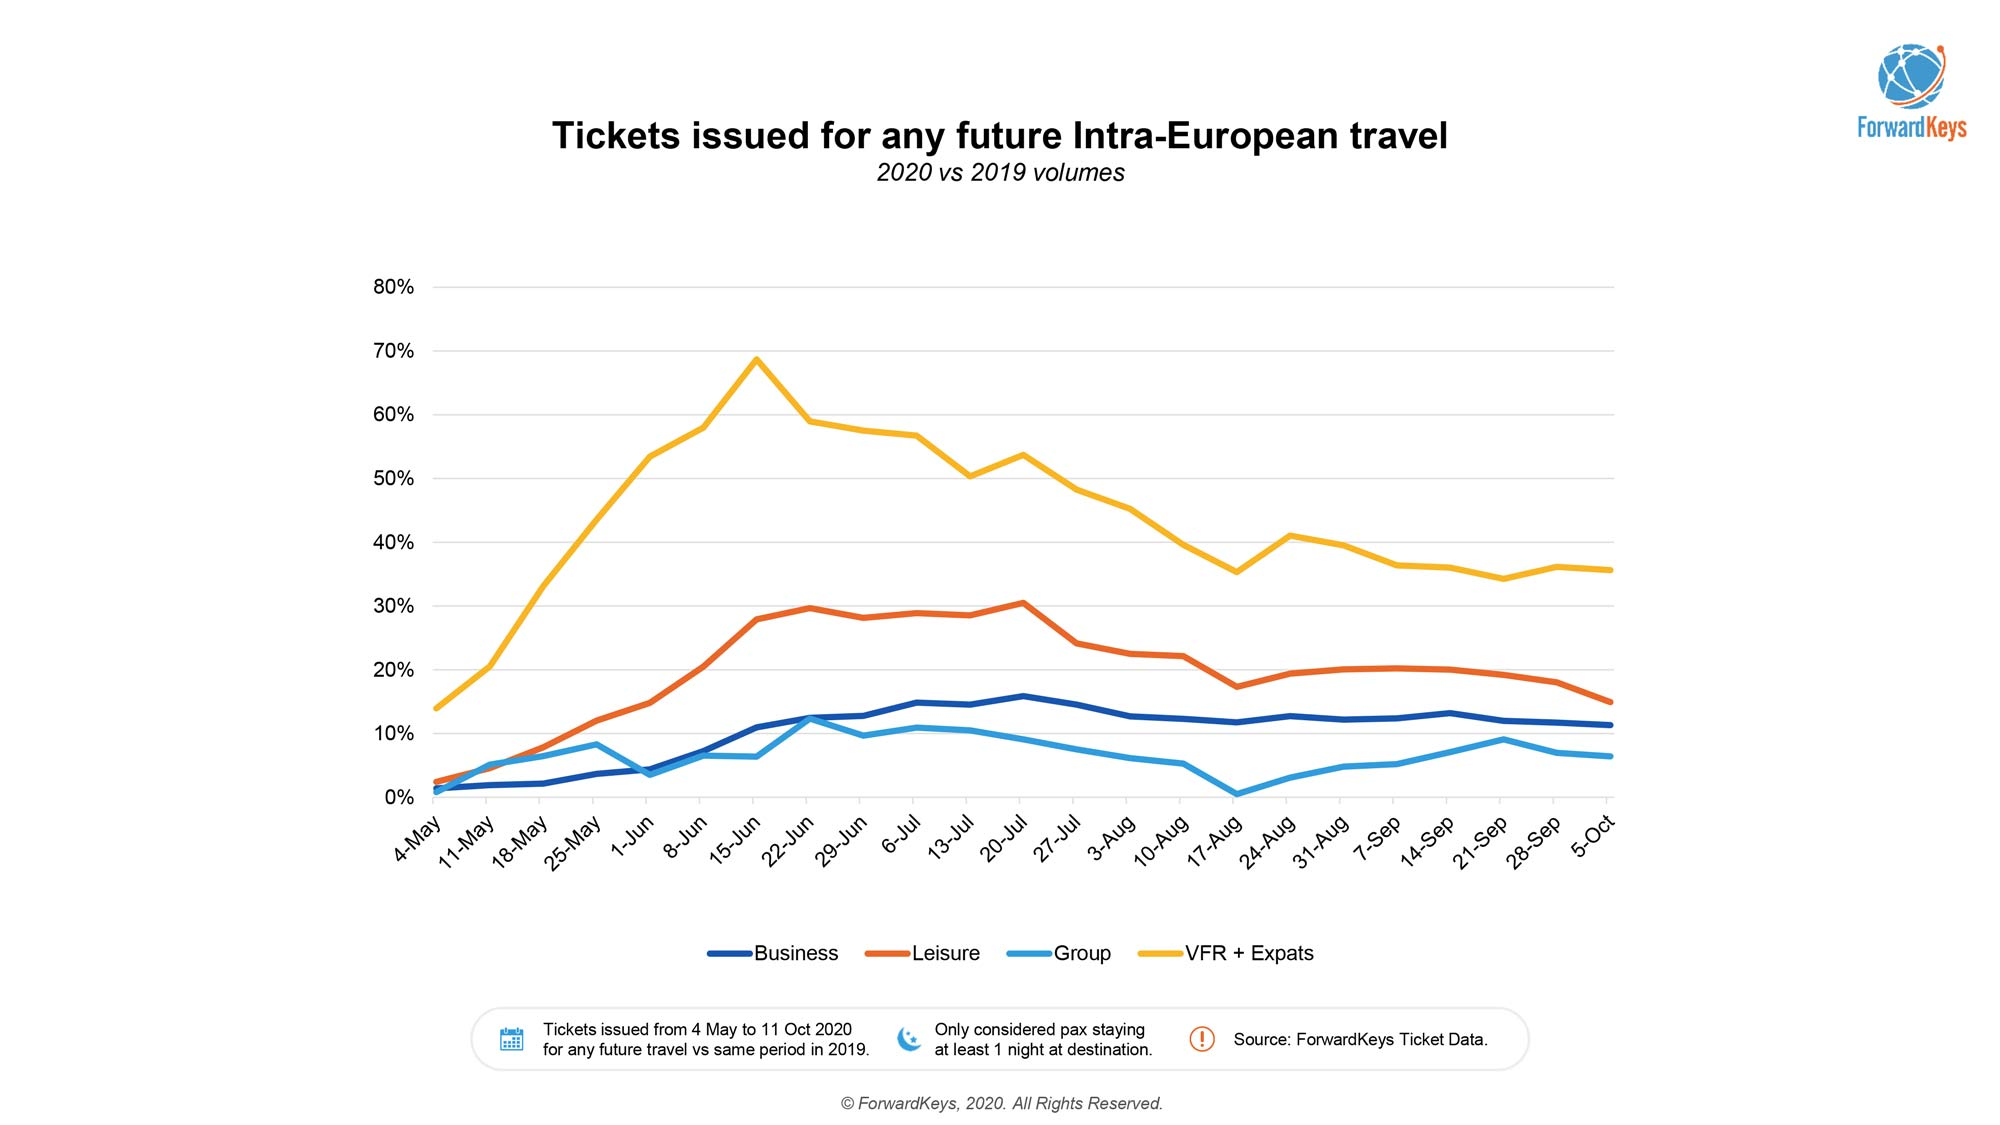 The Rise of Domestic & Regional travel